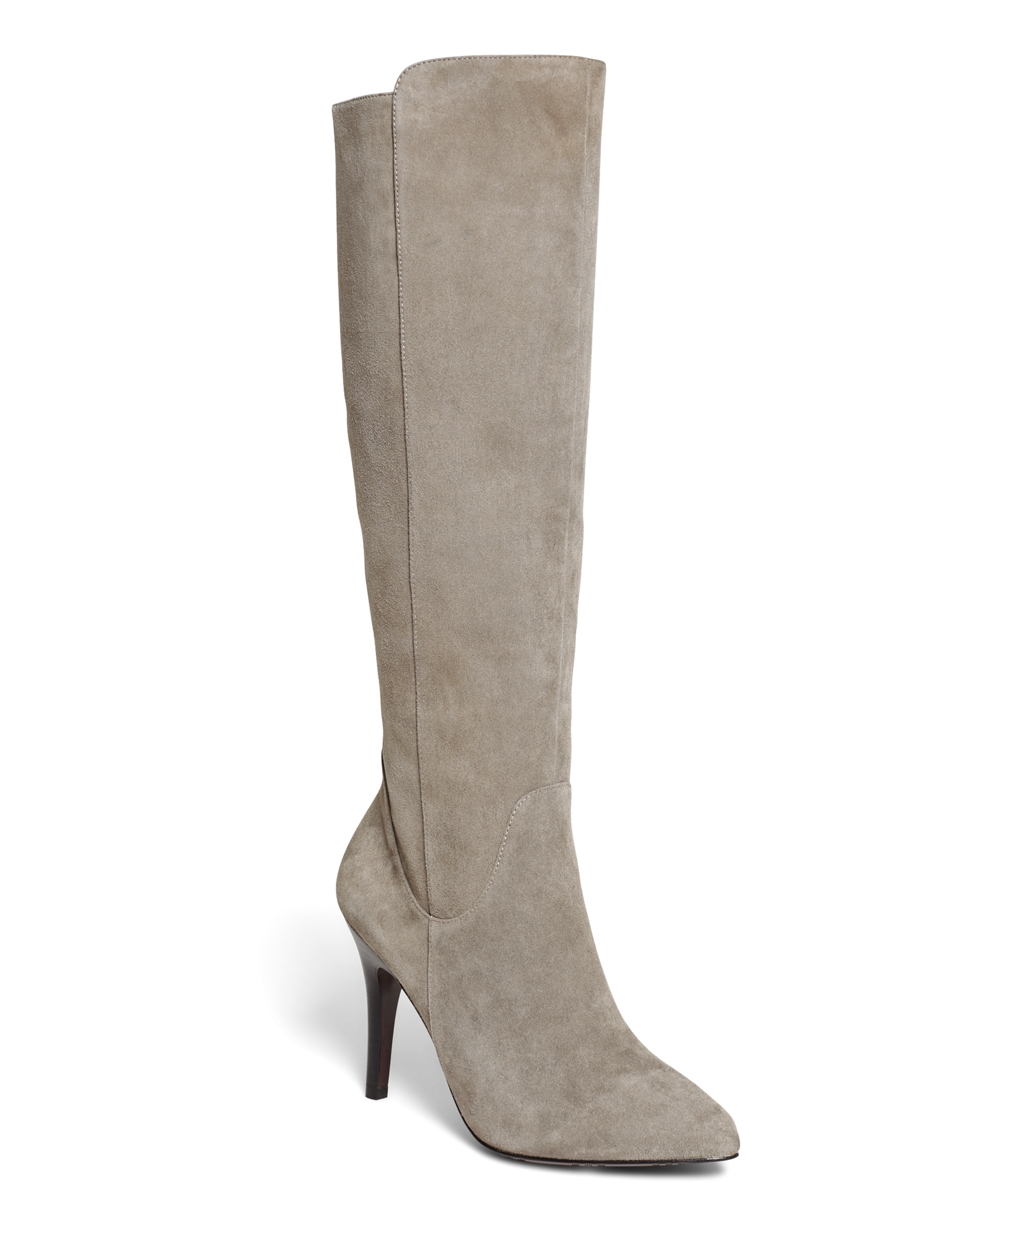 brothers suede boots in gray lyst